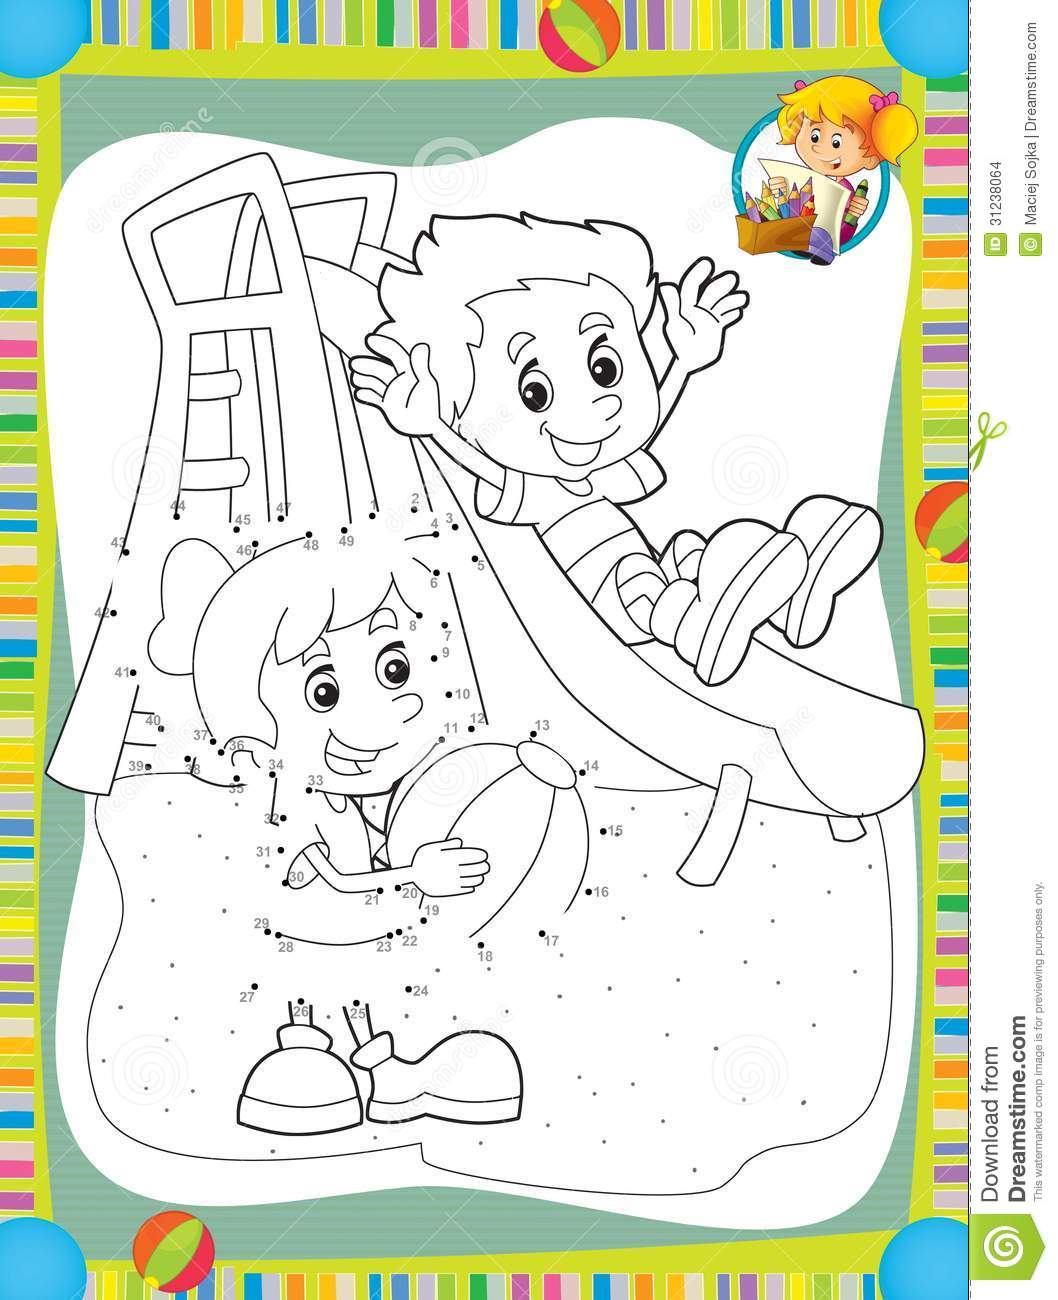 Free coloring pages for exercise - Coloring Illustration Kids Make Page